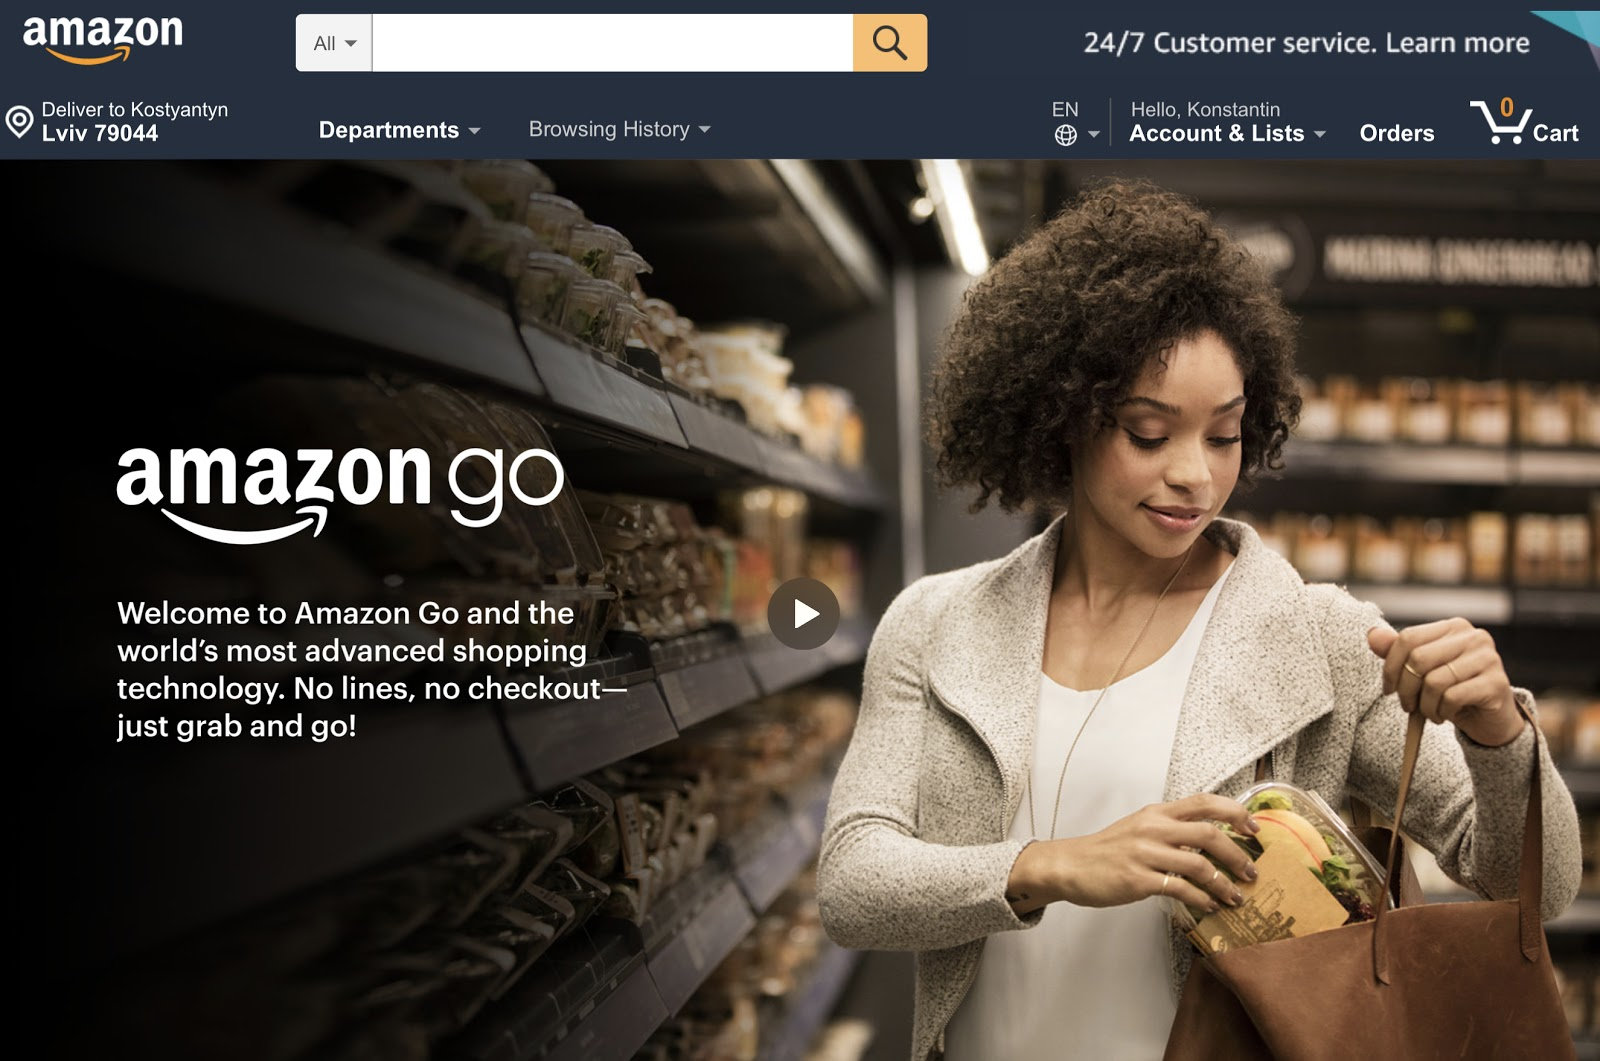 grab and go by Amazon